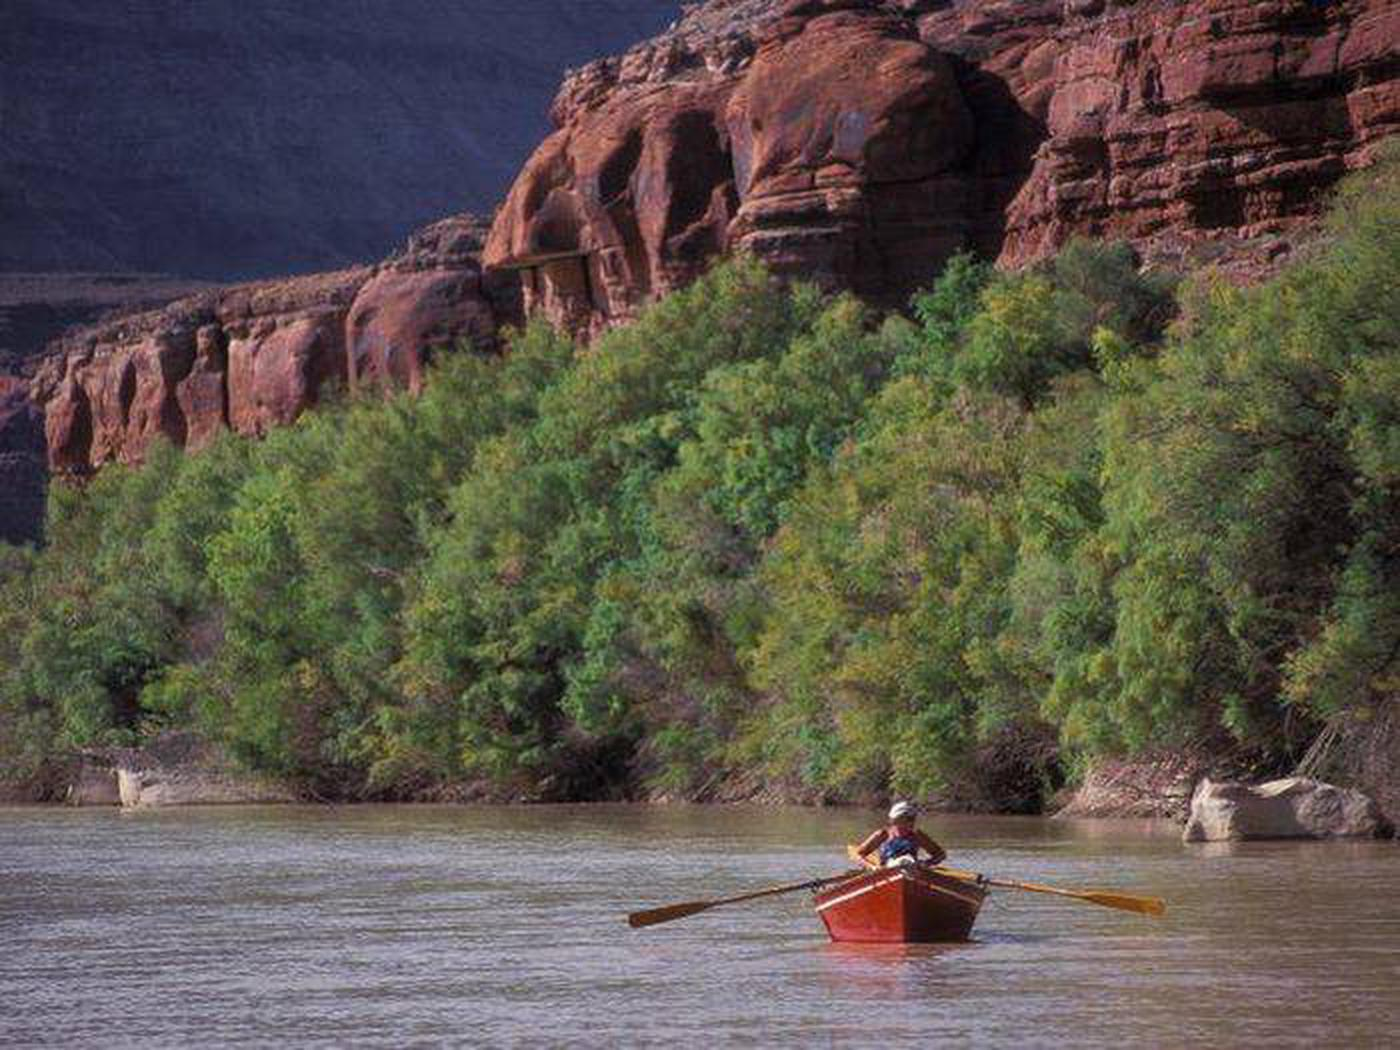 Green RiverFlatwater Boating, Green River